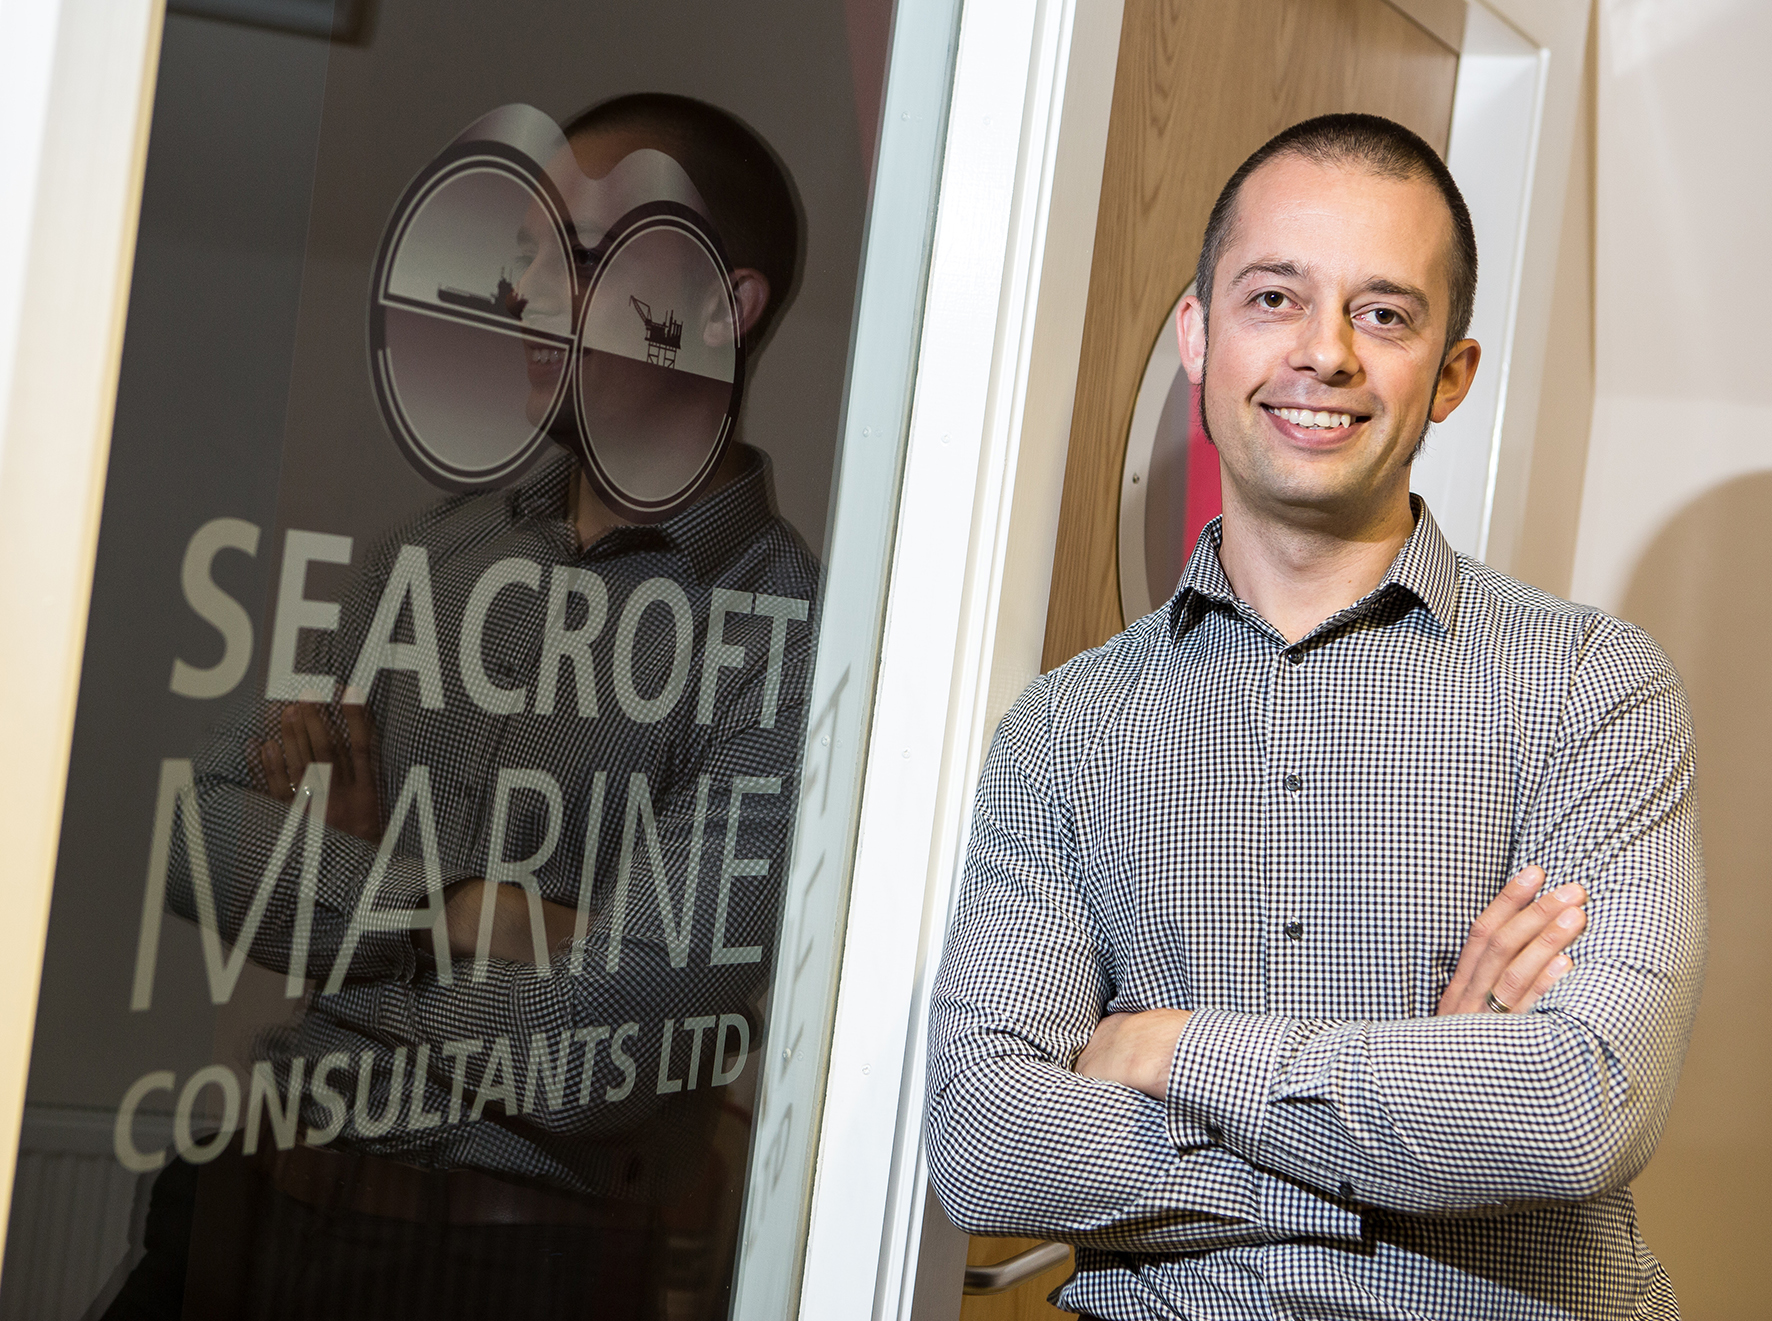 Seacroft Marine has won a new contract